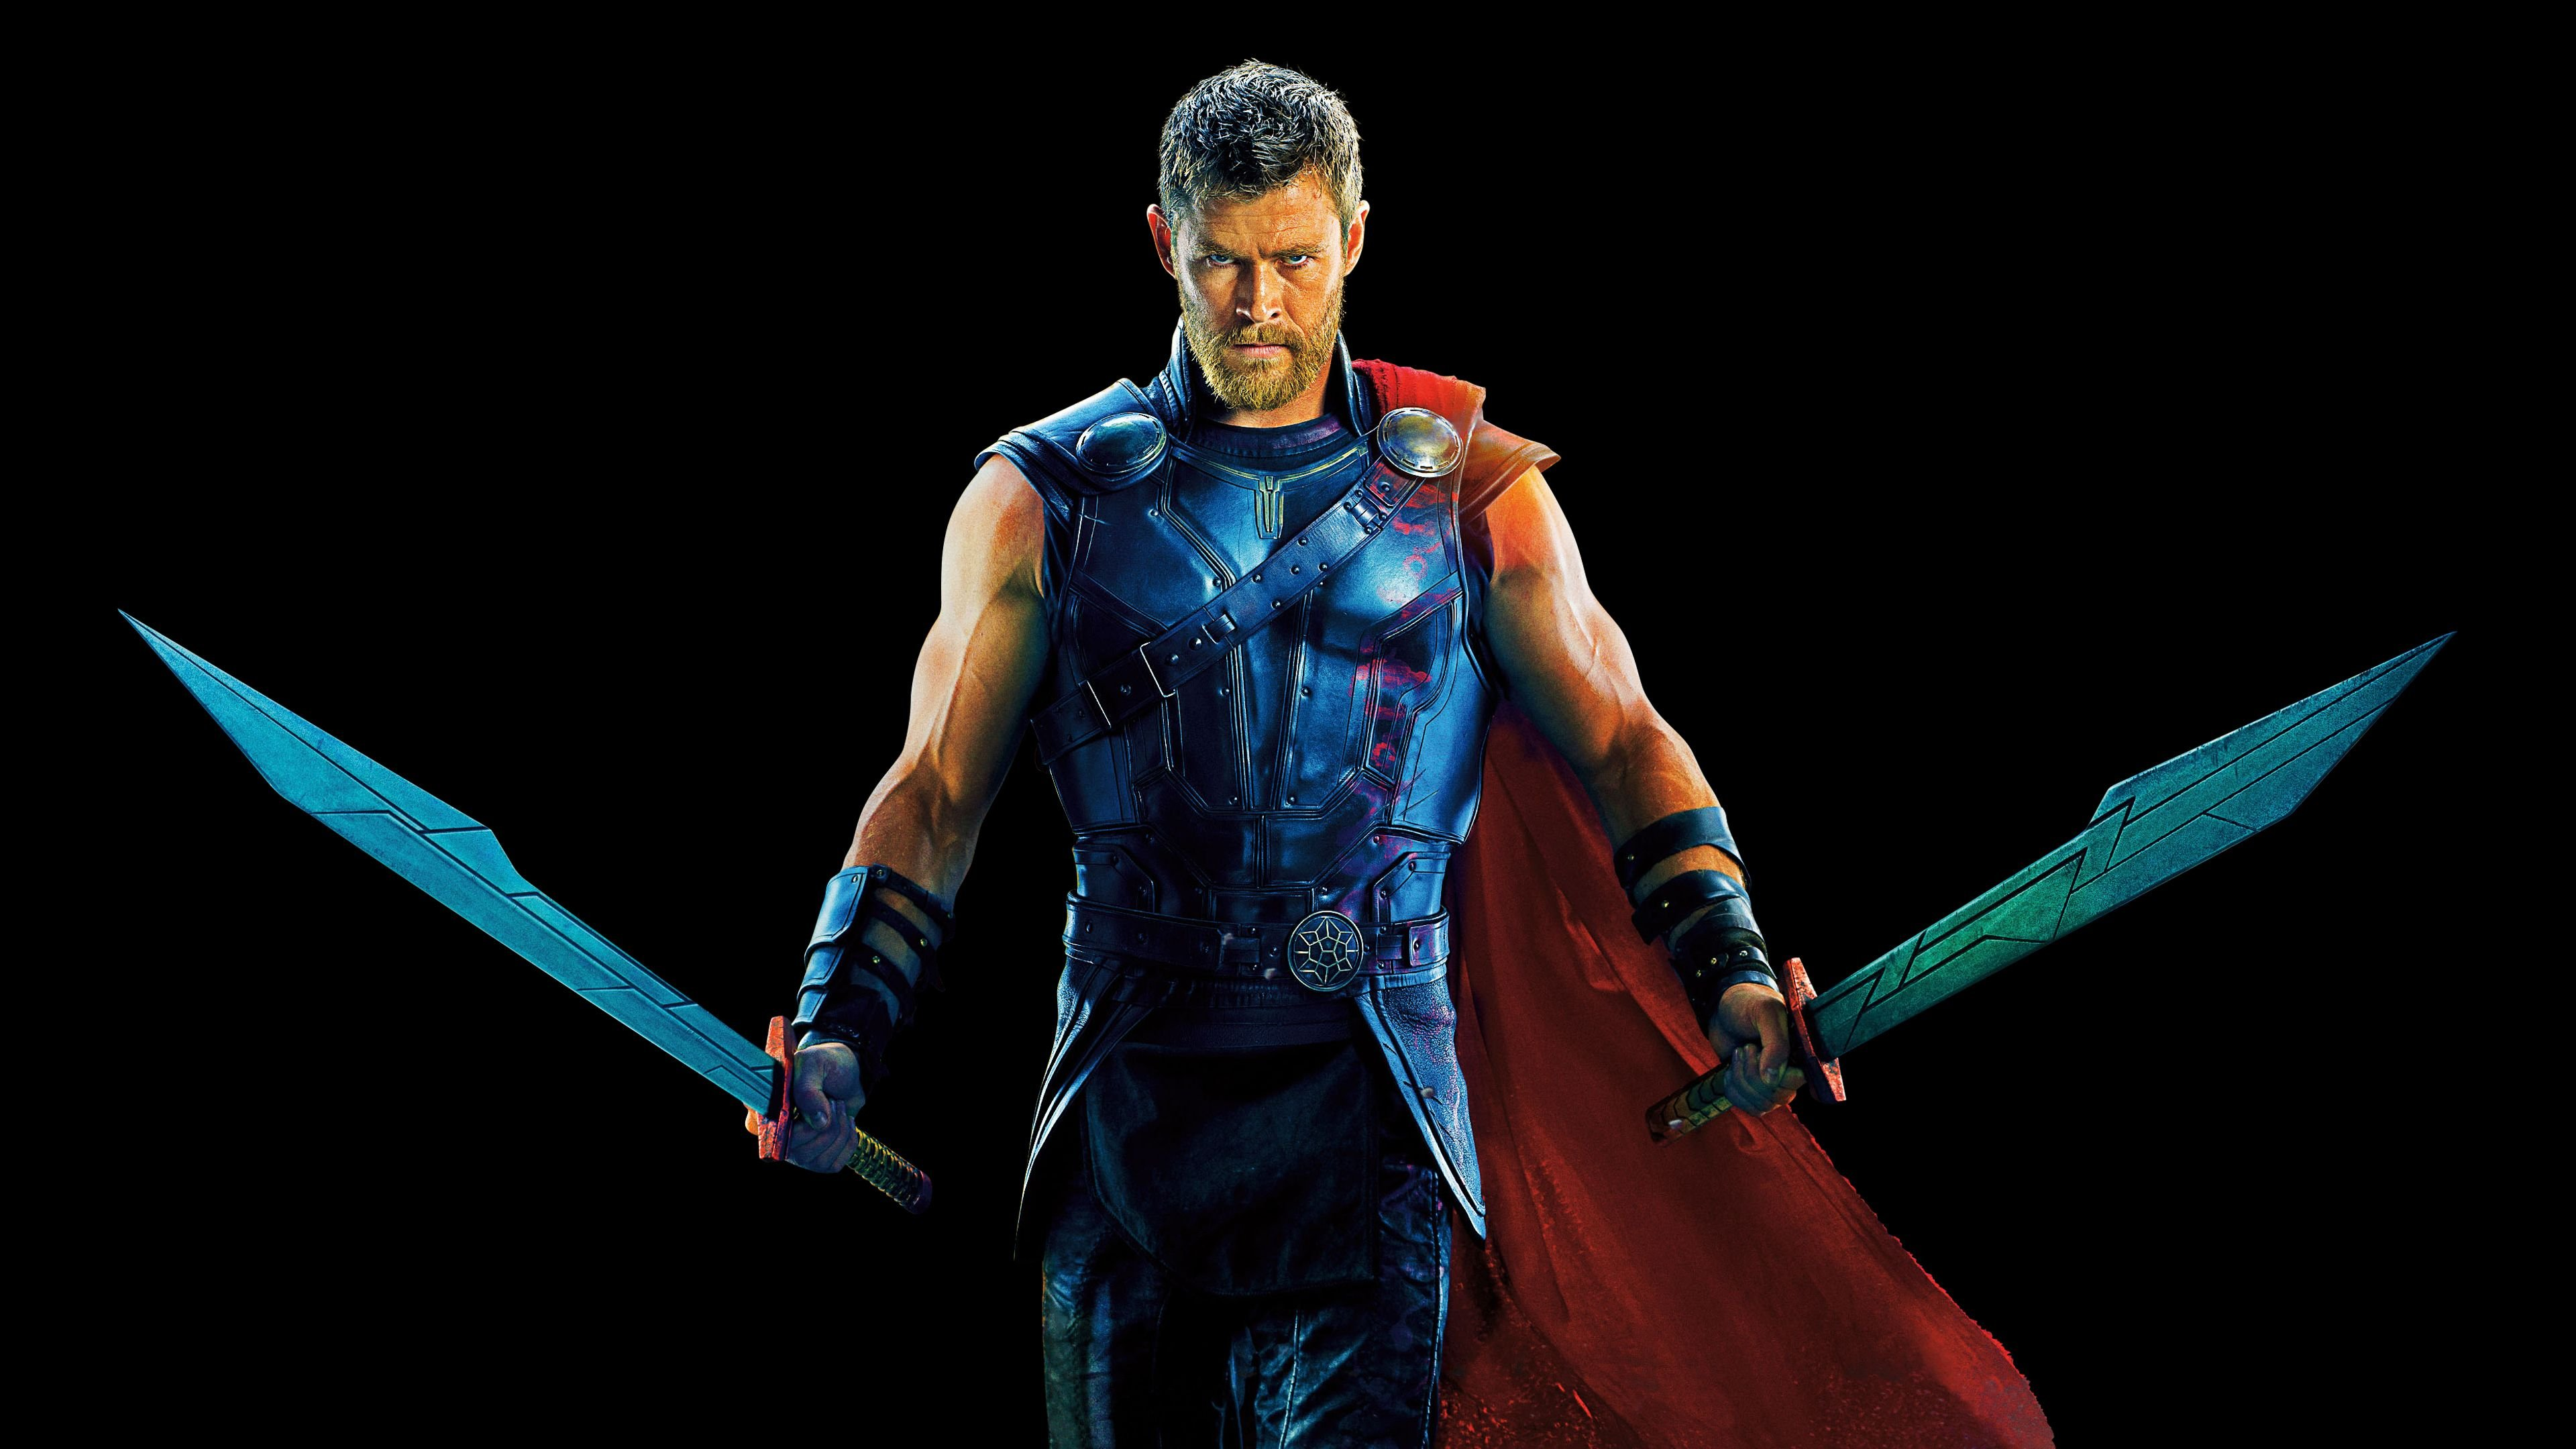 55 Best Free 4k Thor Wallpapers Wallpaperaccess